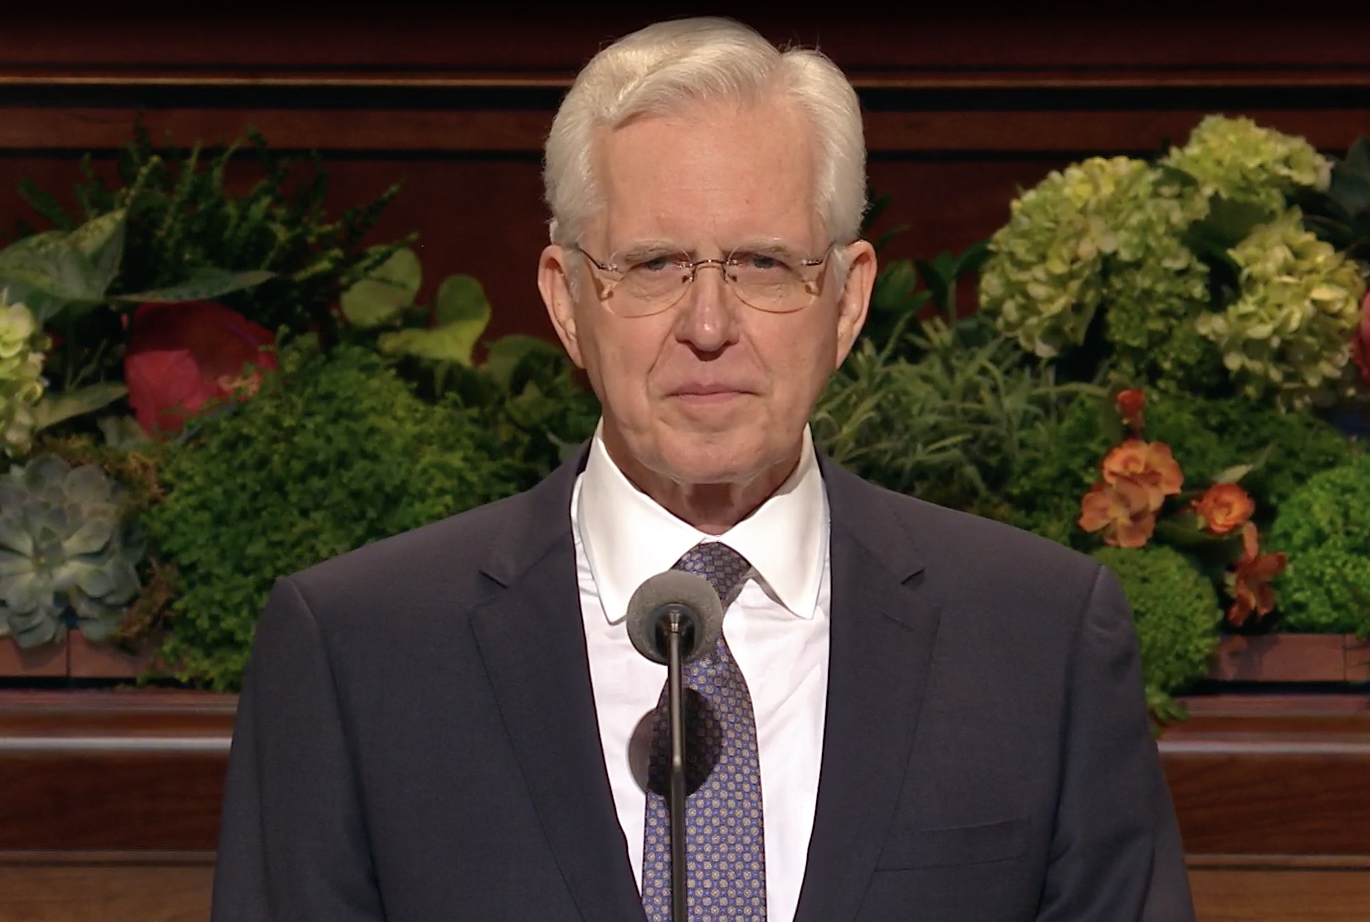 Elder D. Todd Christofferson of the Quorum of the Twelve Apostles gives his address during the Sunday morning session of the 189th Annual General Conference on April 7, 2019.